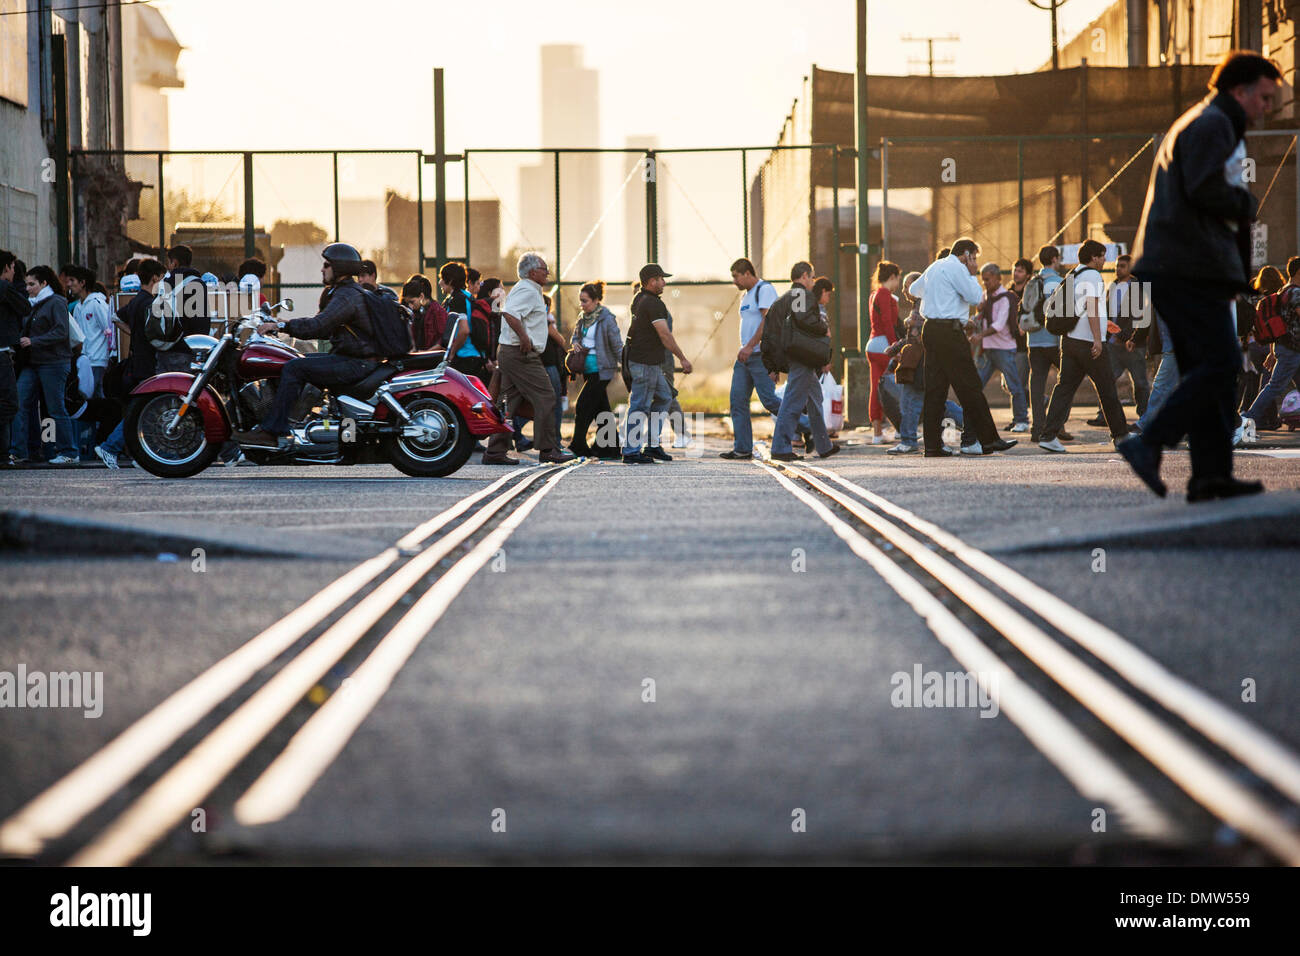 Rush hour in Buenos Aires, at the station Av Dr Jose Maria Ramos Mejia, Buenos Aires, Buenos Aires Province, Argentina - Stock Image